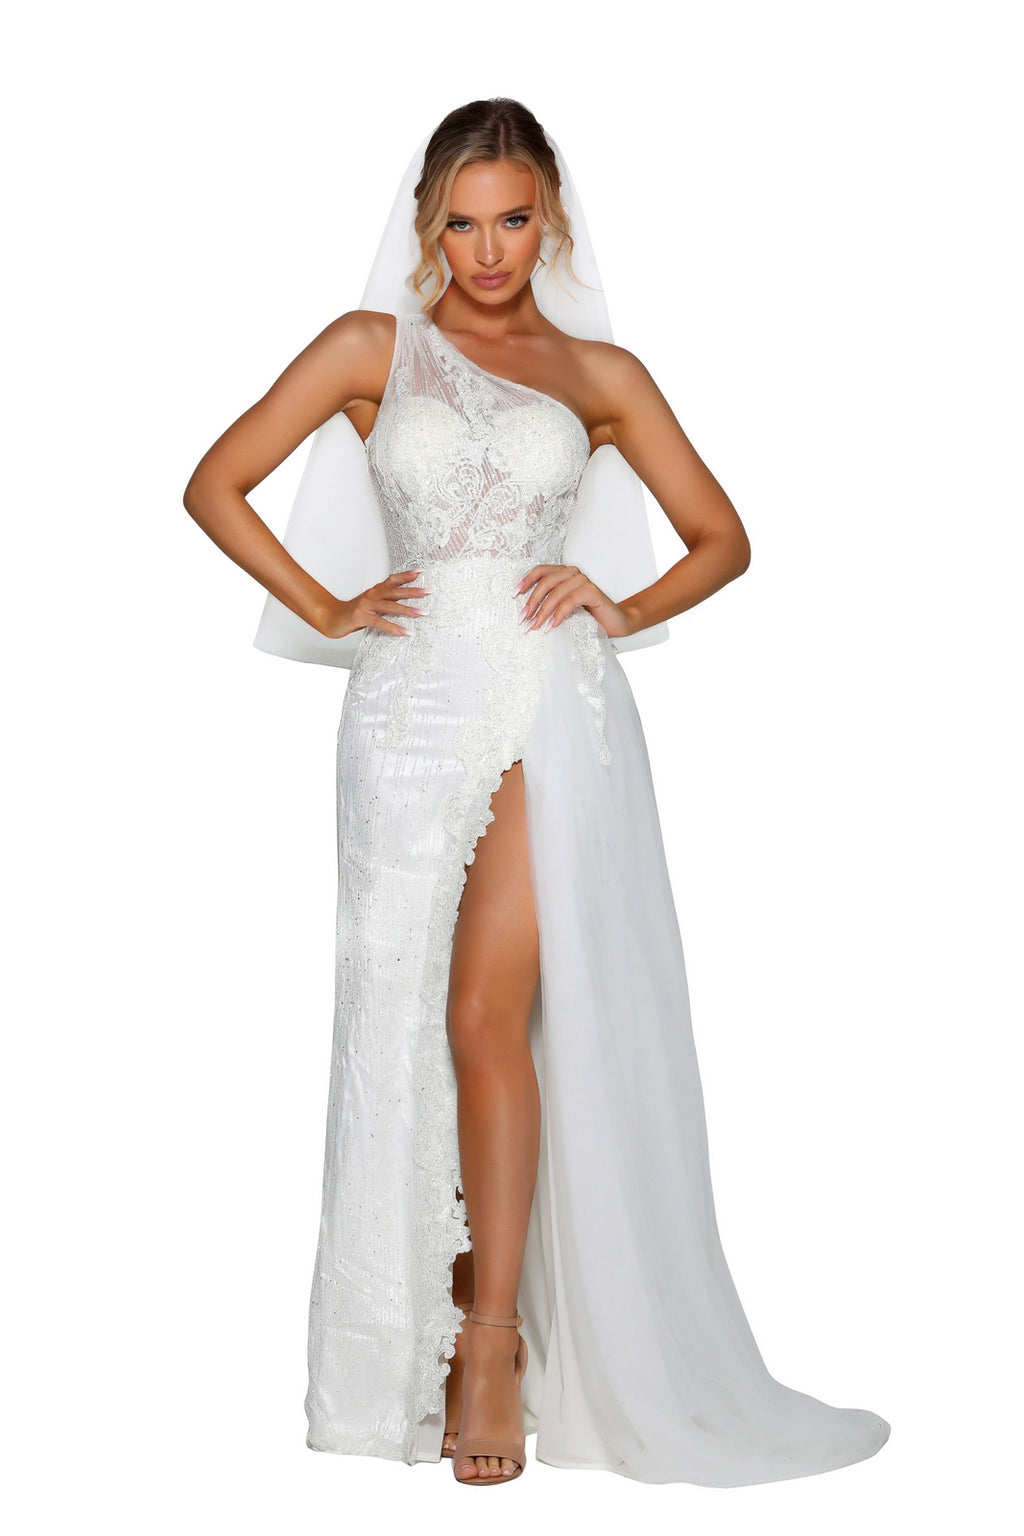 Portia and Scarlett PSB6802 Dress